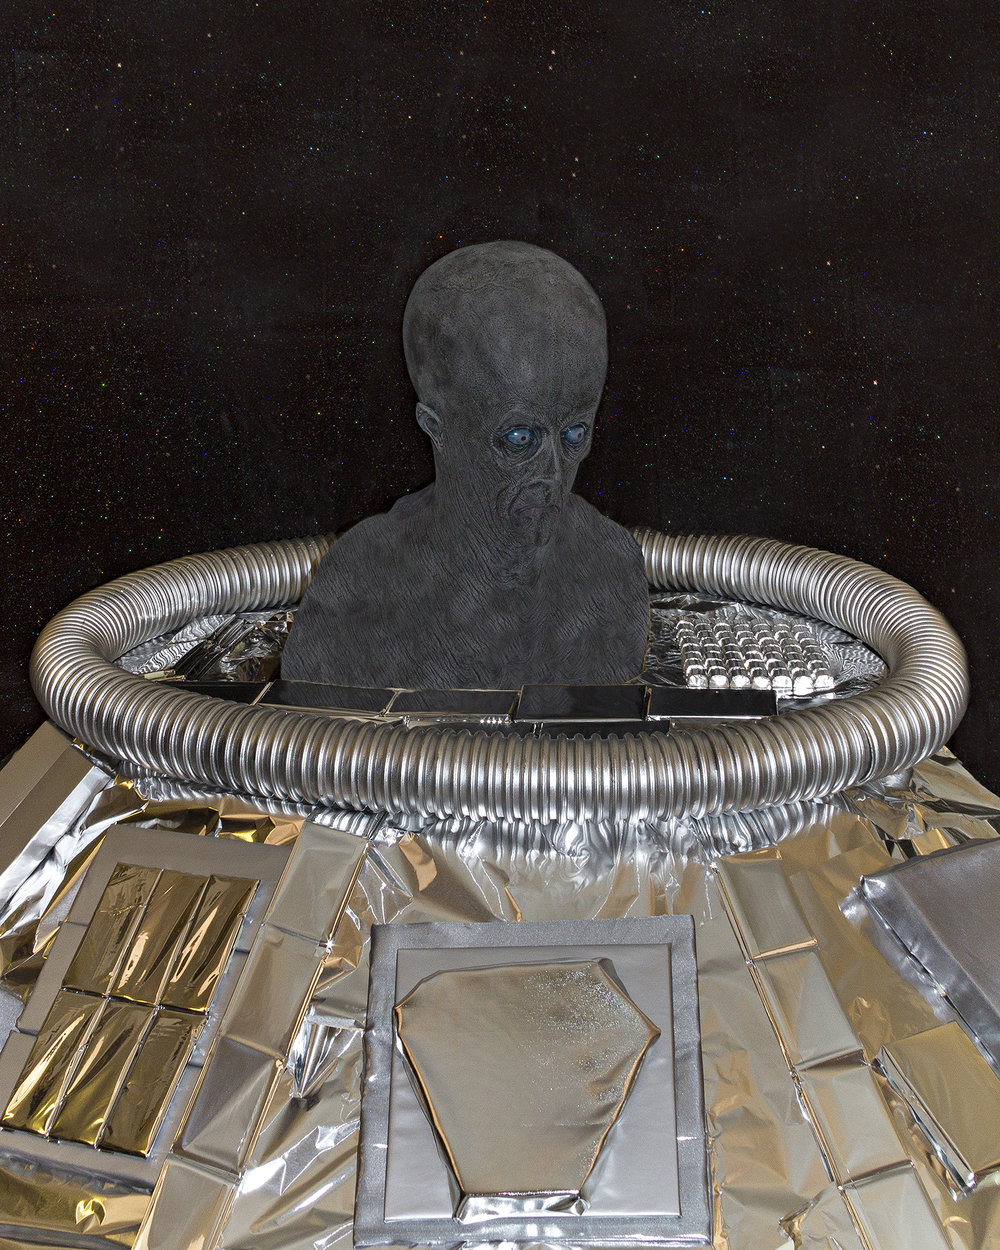 alien in tower or spacecraft one.jpg